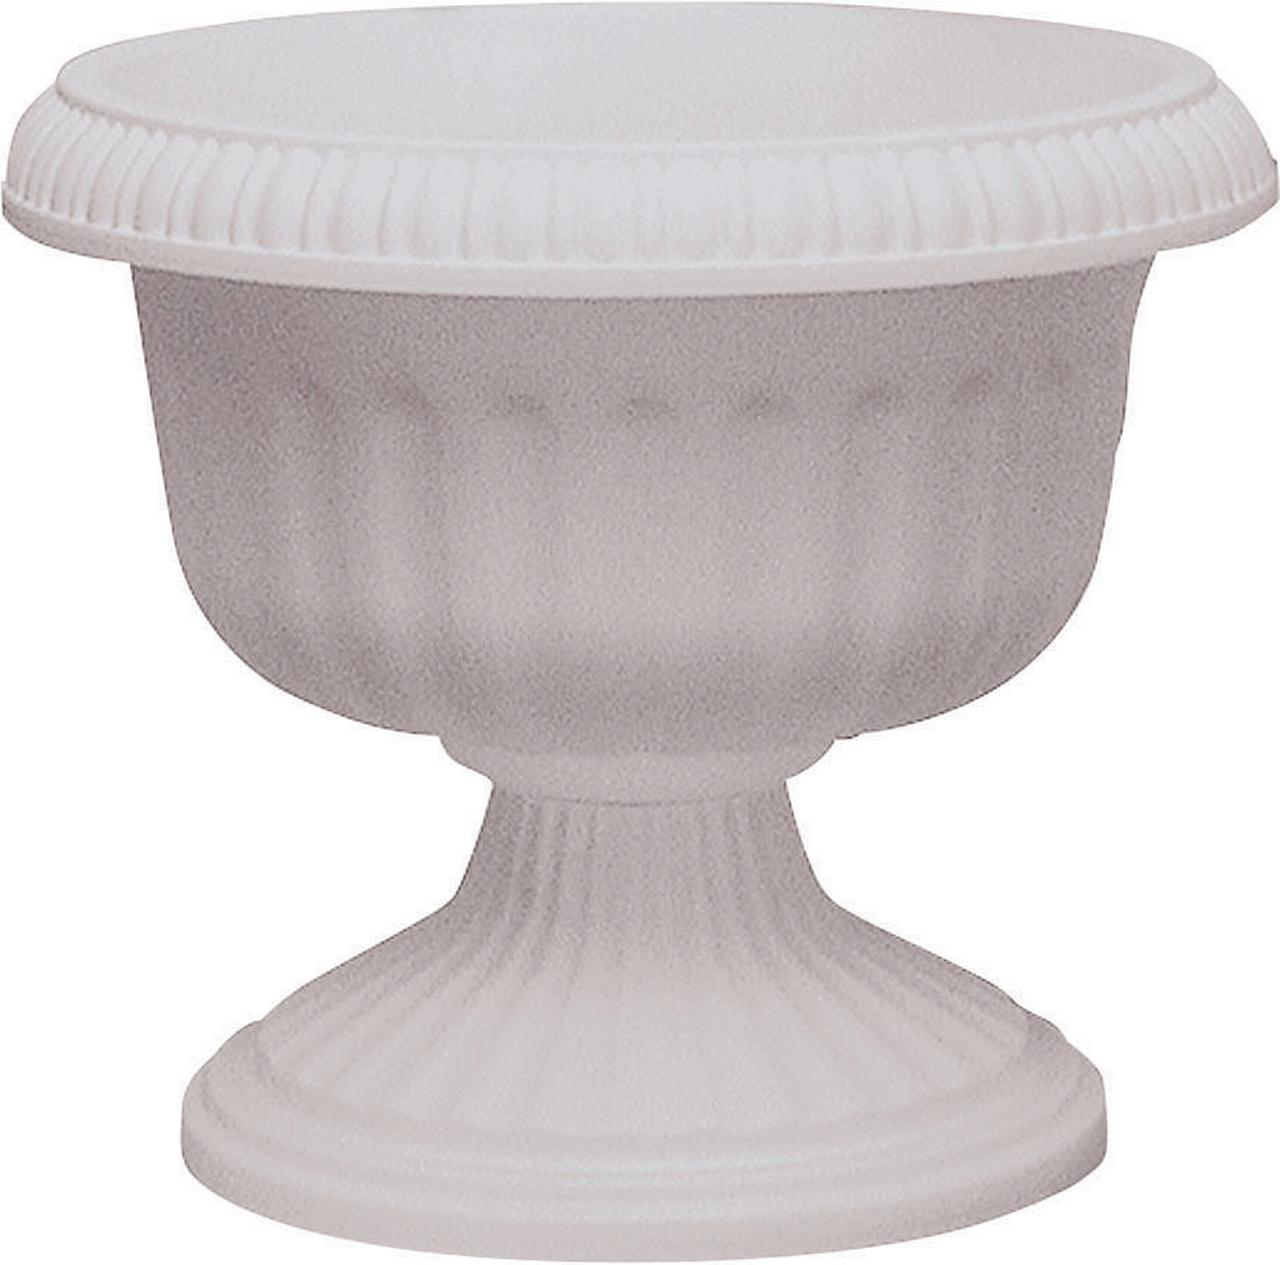 Southern Patio Dynamic Design UR1810WH Grecian Style Urn Planter, 18 in Dia X 17.63 in L,... by ATT SOUTHERN INC